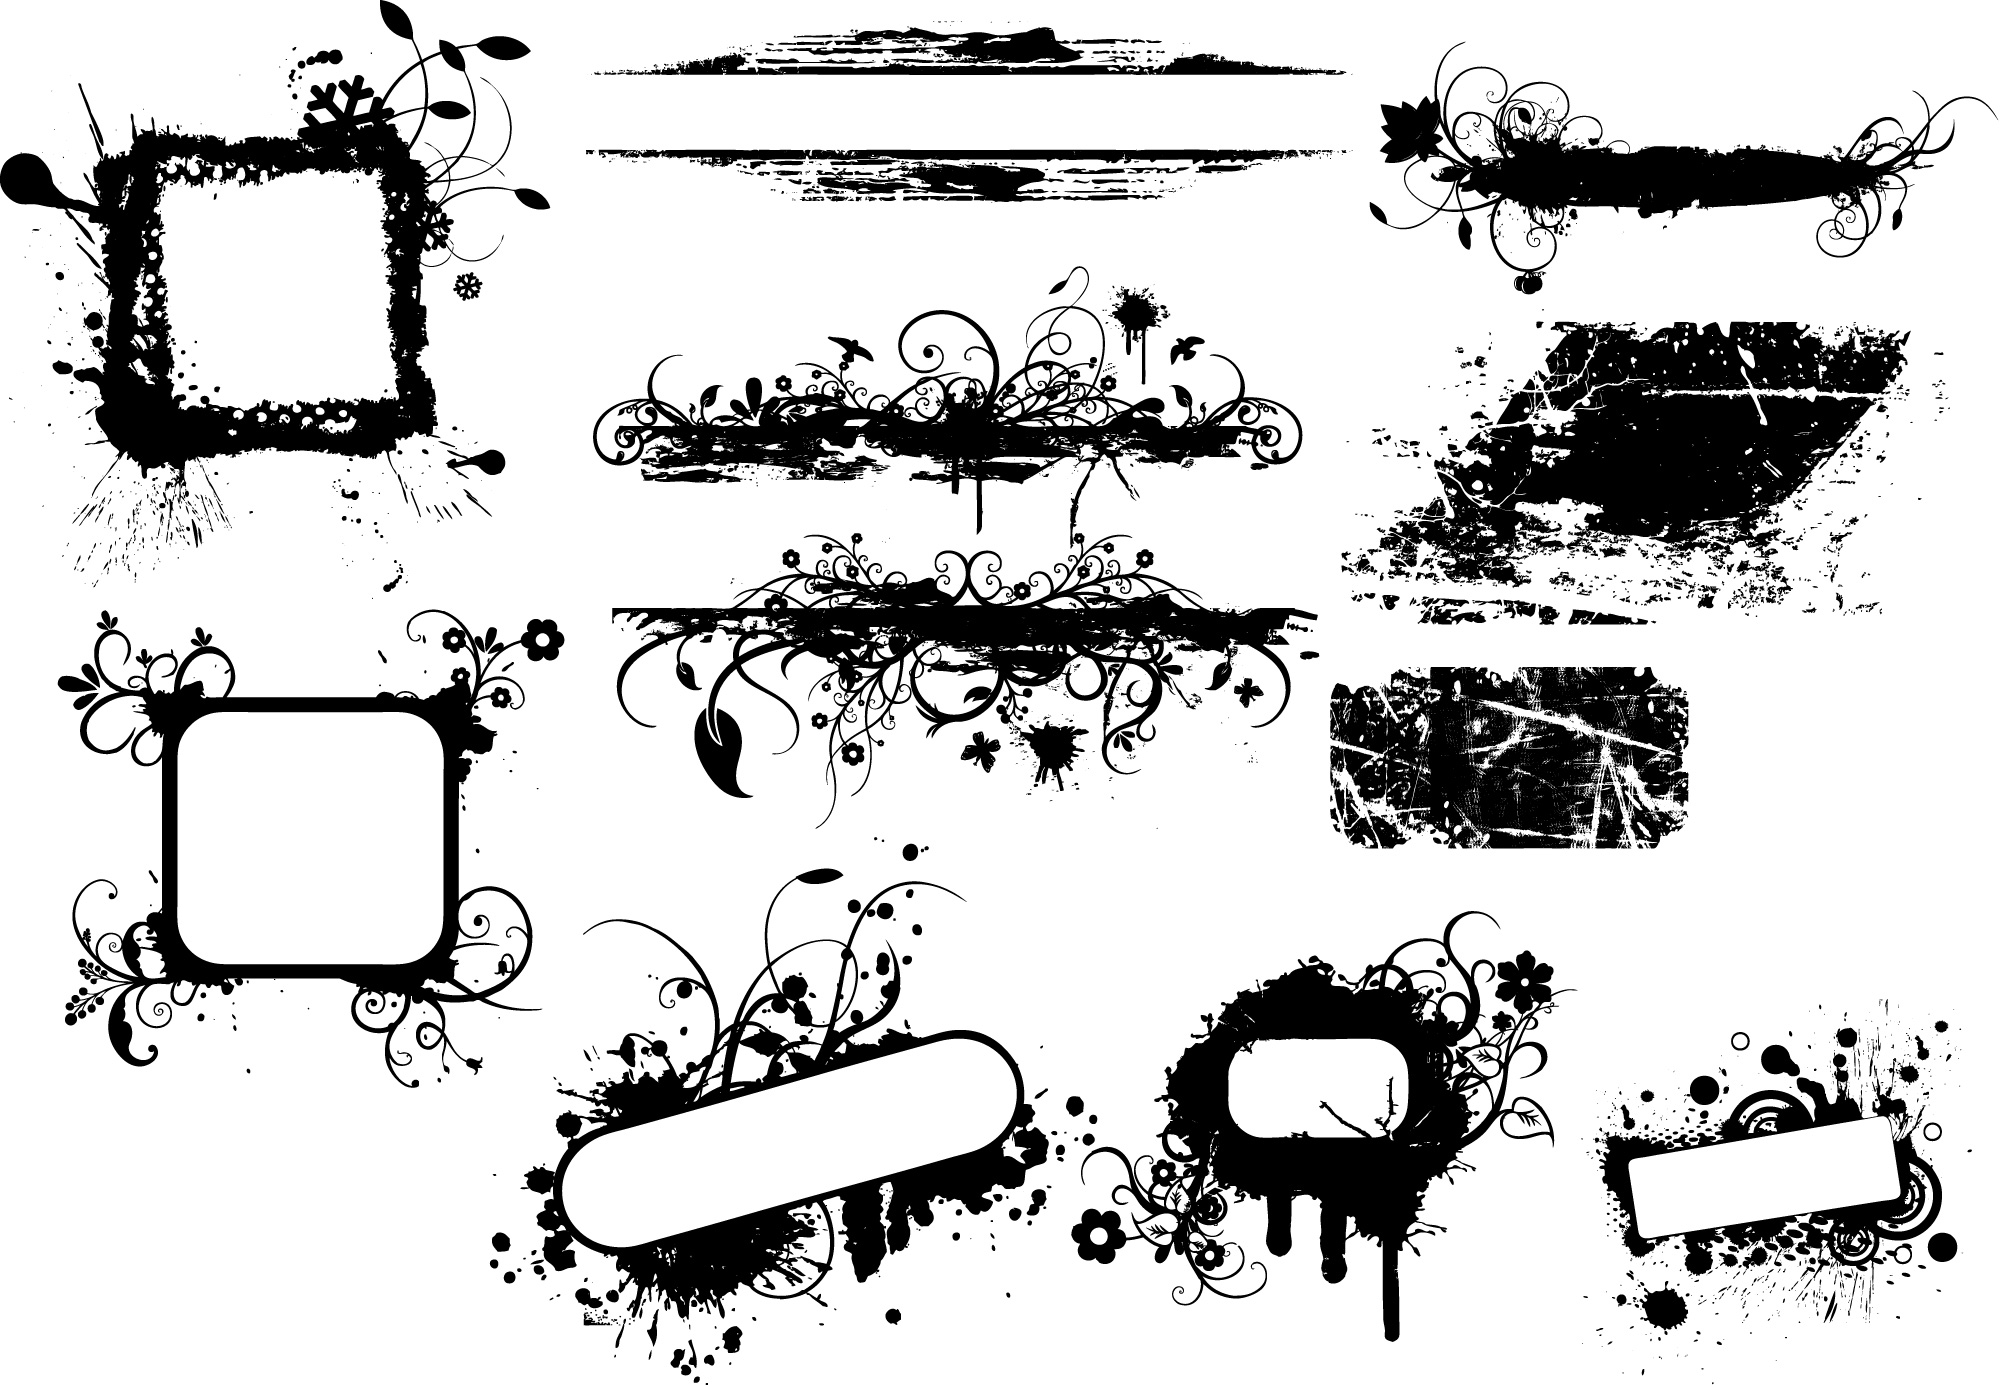 Free Photoshop: Grunge Banners Brushes, PNG, Vectors and.